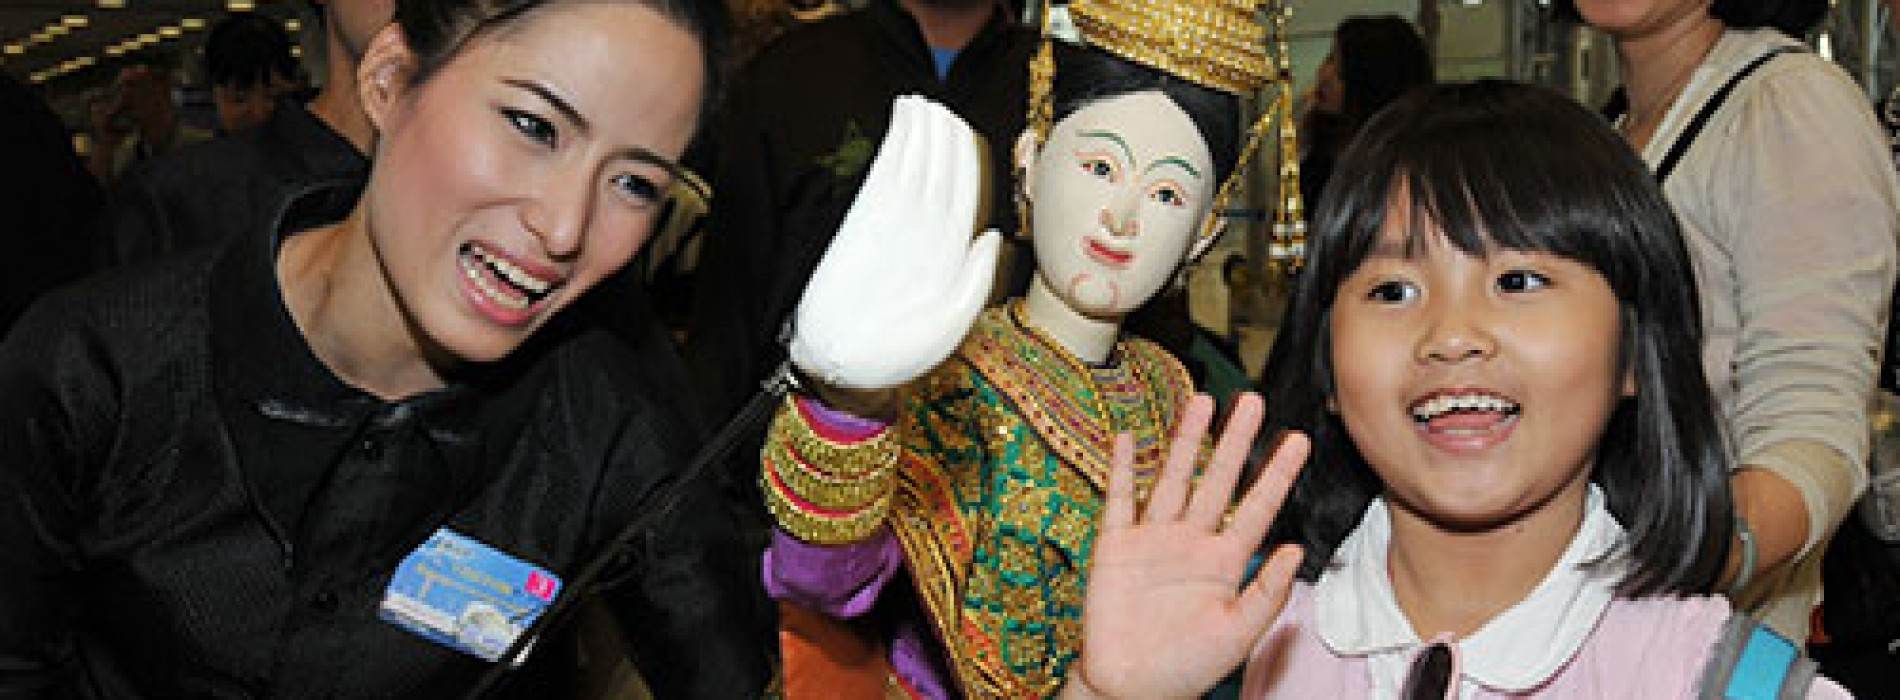 Thailand visitor arrivals surge 25% in Jan-May 2015